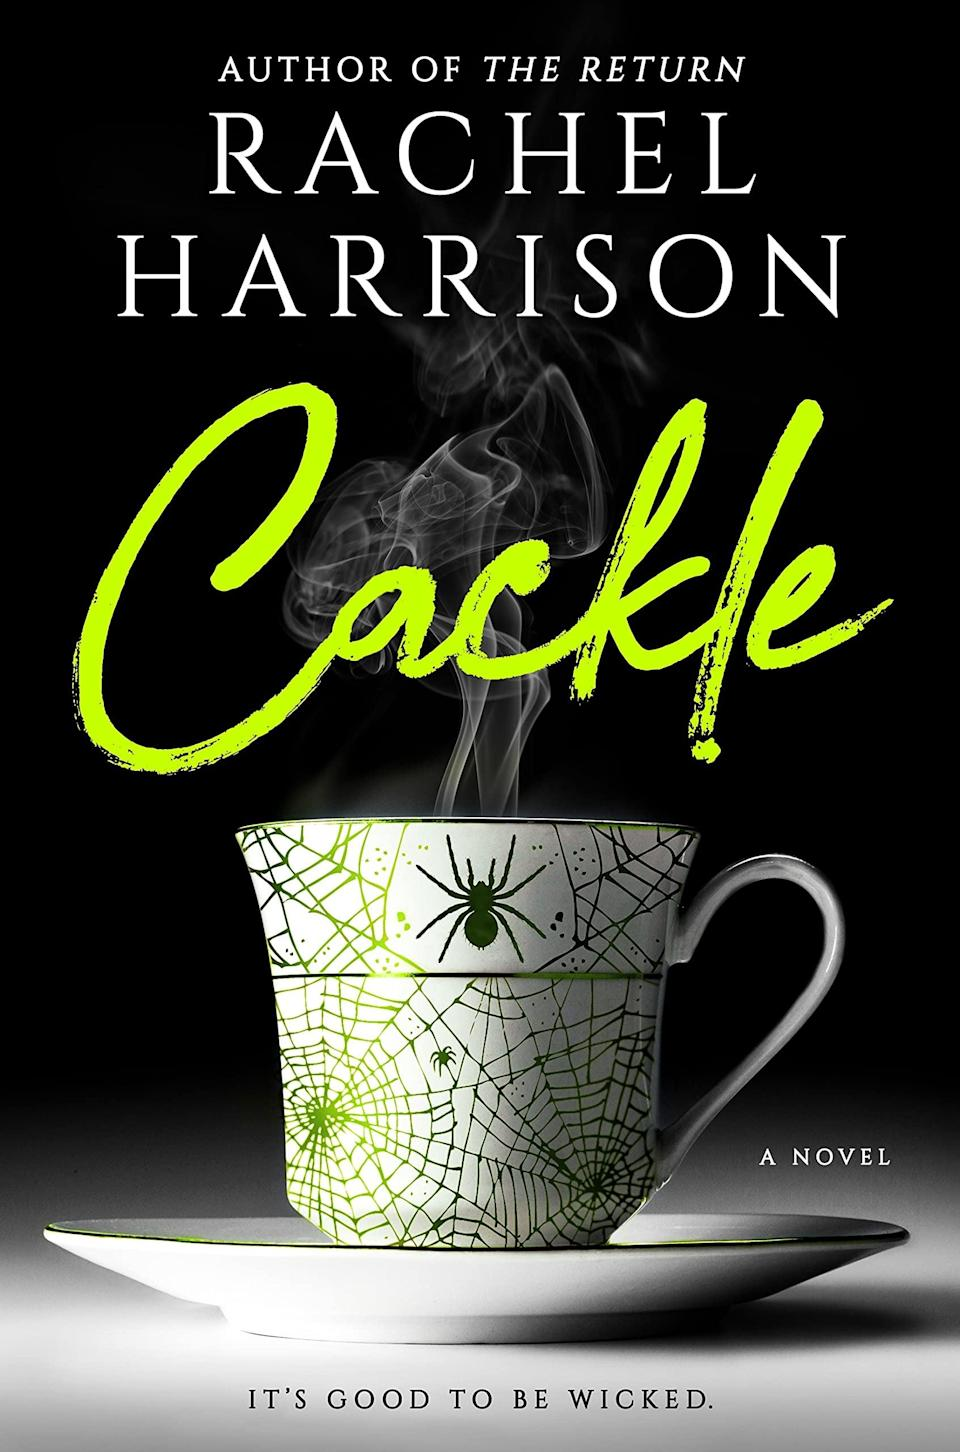 <p>Looking for wicked humor and wondrous witches? Invite yourself into Rachael Harrison's <span><b>Cackle</b></span>, where darkness and comedy come together to teach the main character, Annie, a young Manhattan woman who moves to a small upstate village, how to befriend a witch named Sophie (unknowingly, of course) and come into her own.</p>